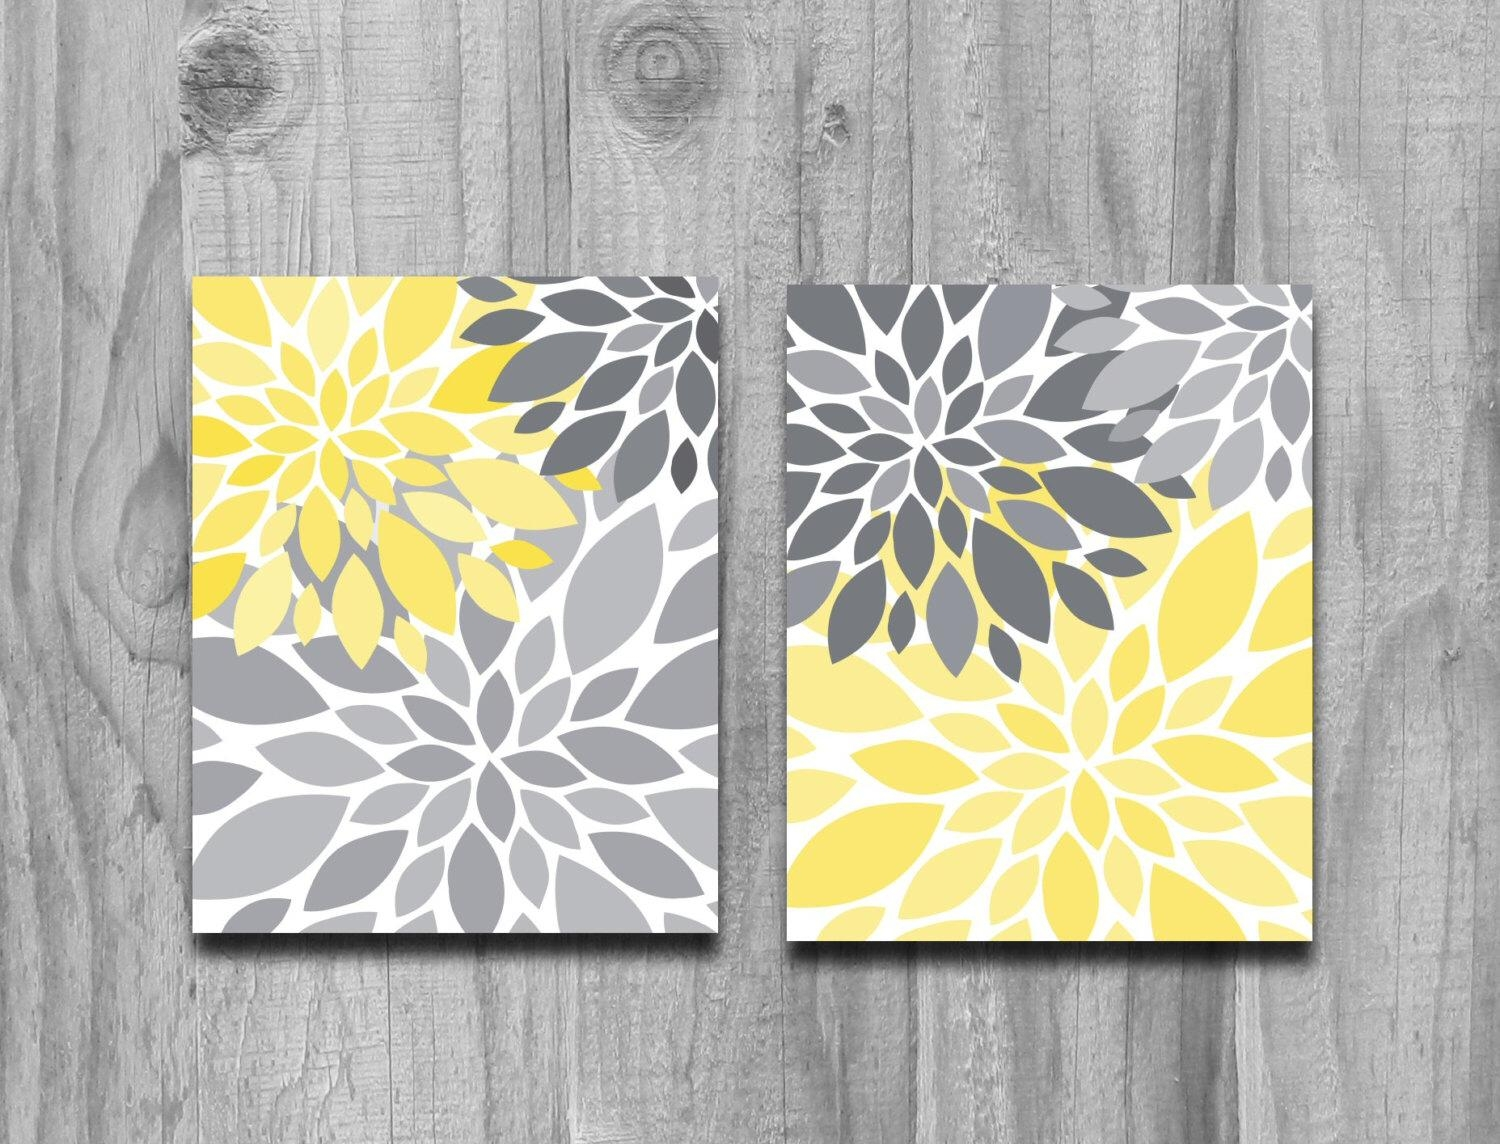 Wall Art: Amazing Grey And Yellow Wall Art Yellow And Gray Framed Inside Yellow And Gray Wall Art (Image 10 of 20)